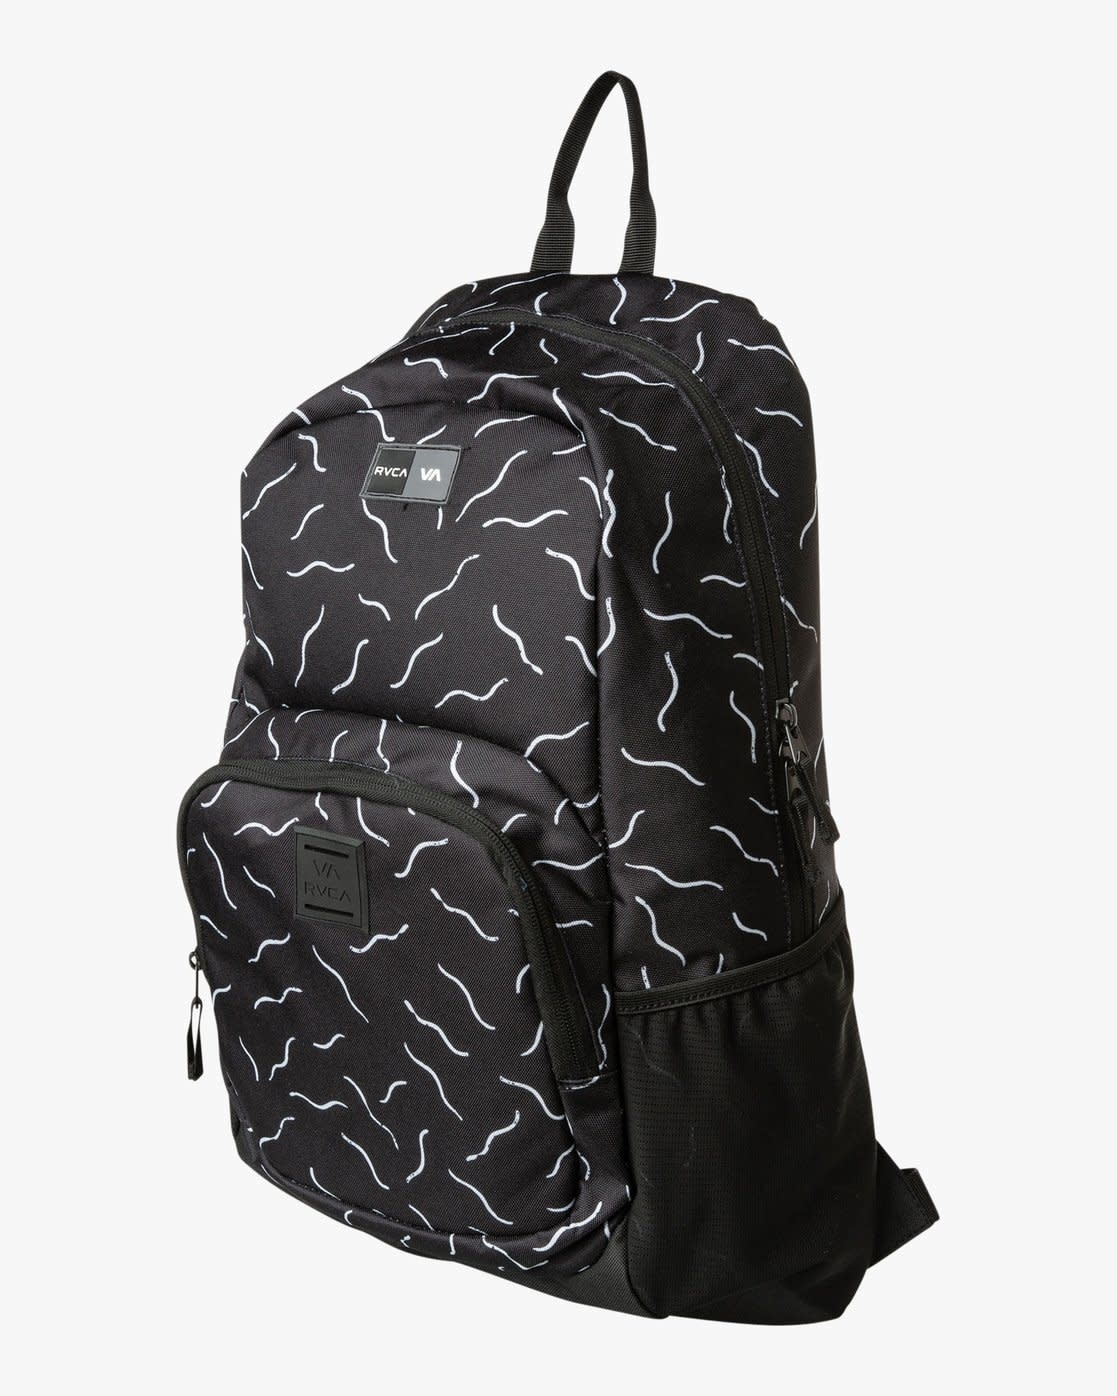 RVCA Estate Backpack Black/White